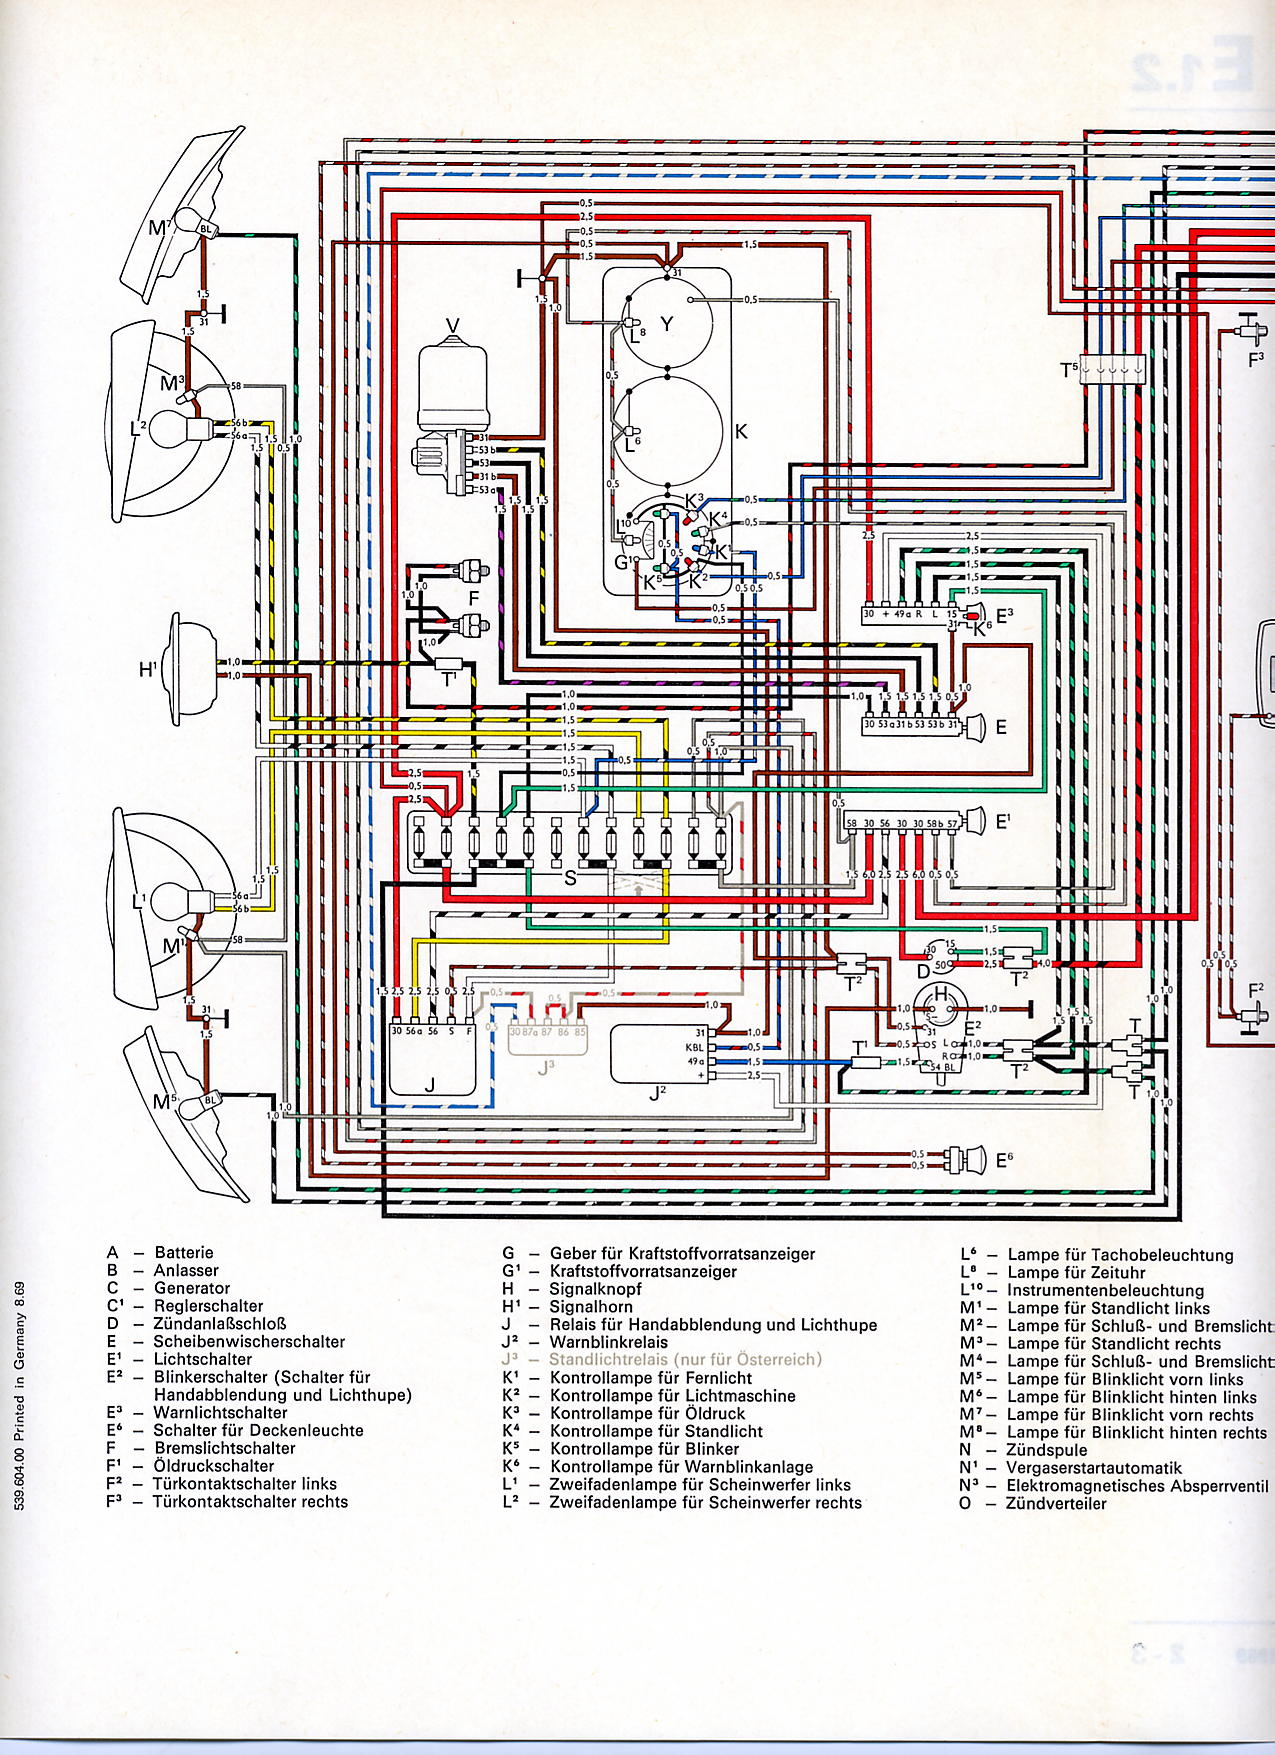 1973 Vw Bus Radio Wiring - Wiring Diagrams